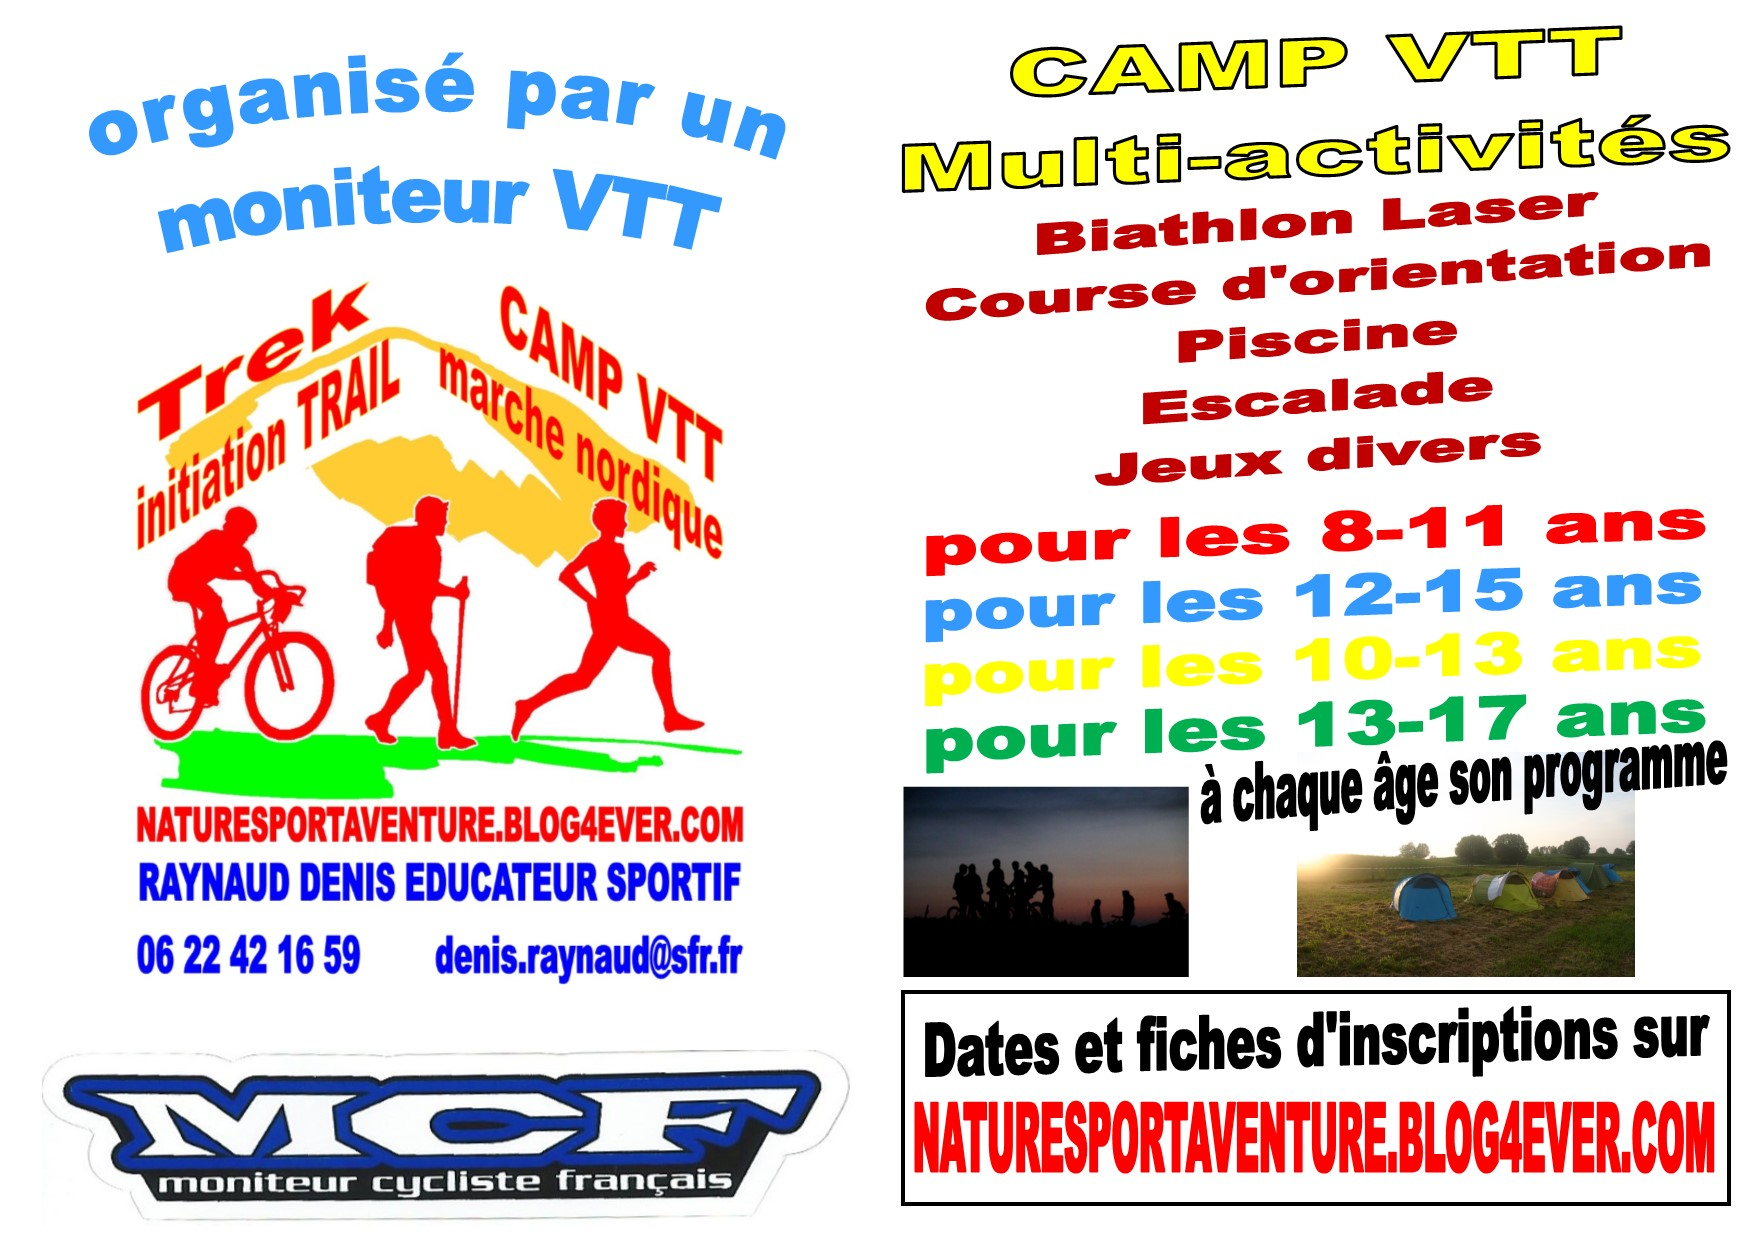 flyer camp VTT 4 volets.jpg